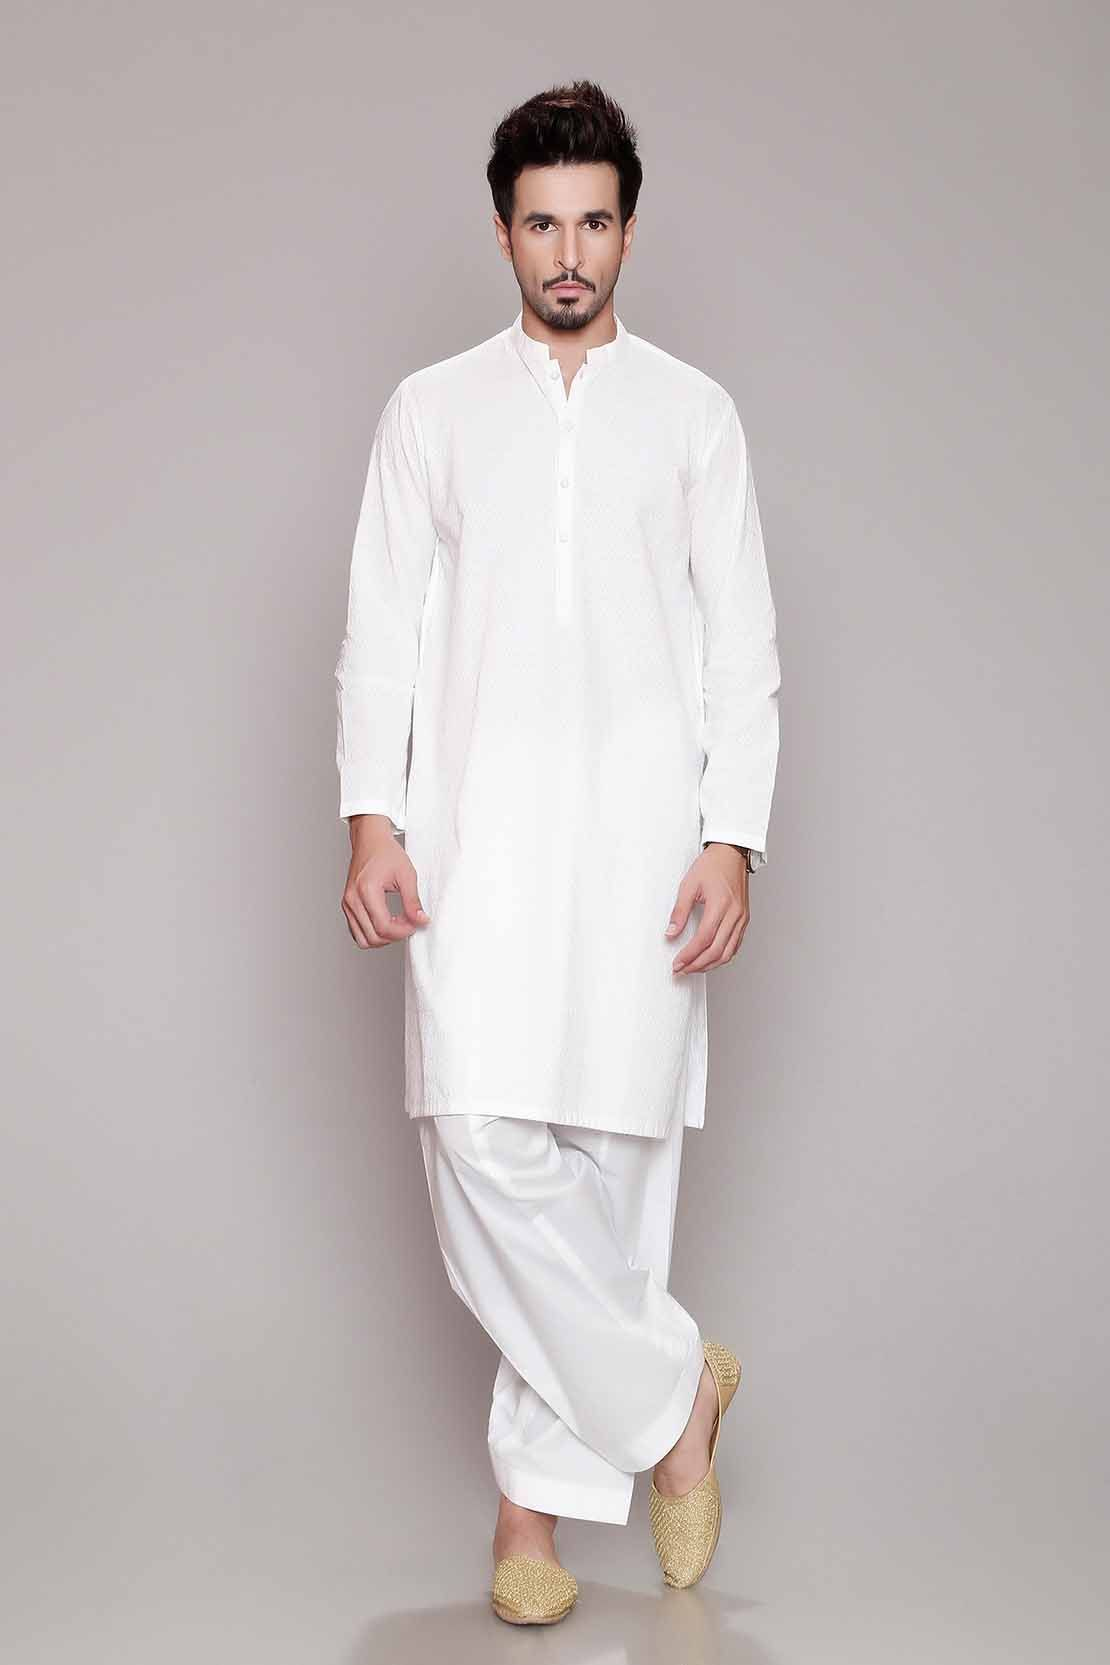 5c9bfda5aa938 Latest Men Modern Kurta Styles Designs Collection 2018-19 by ...